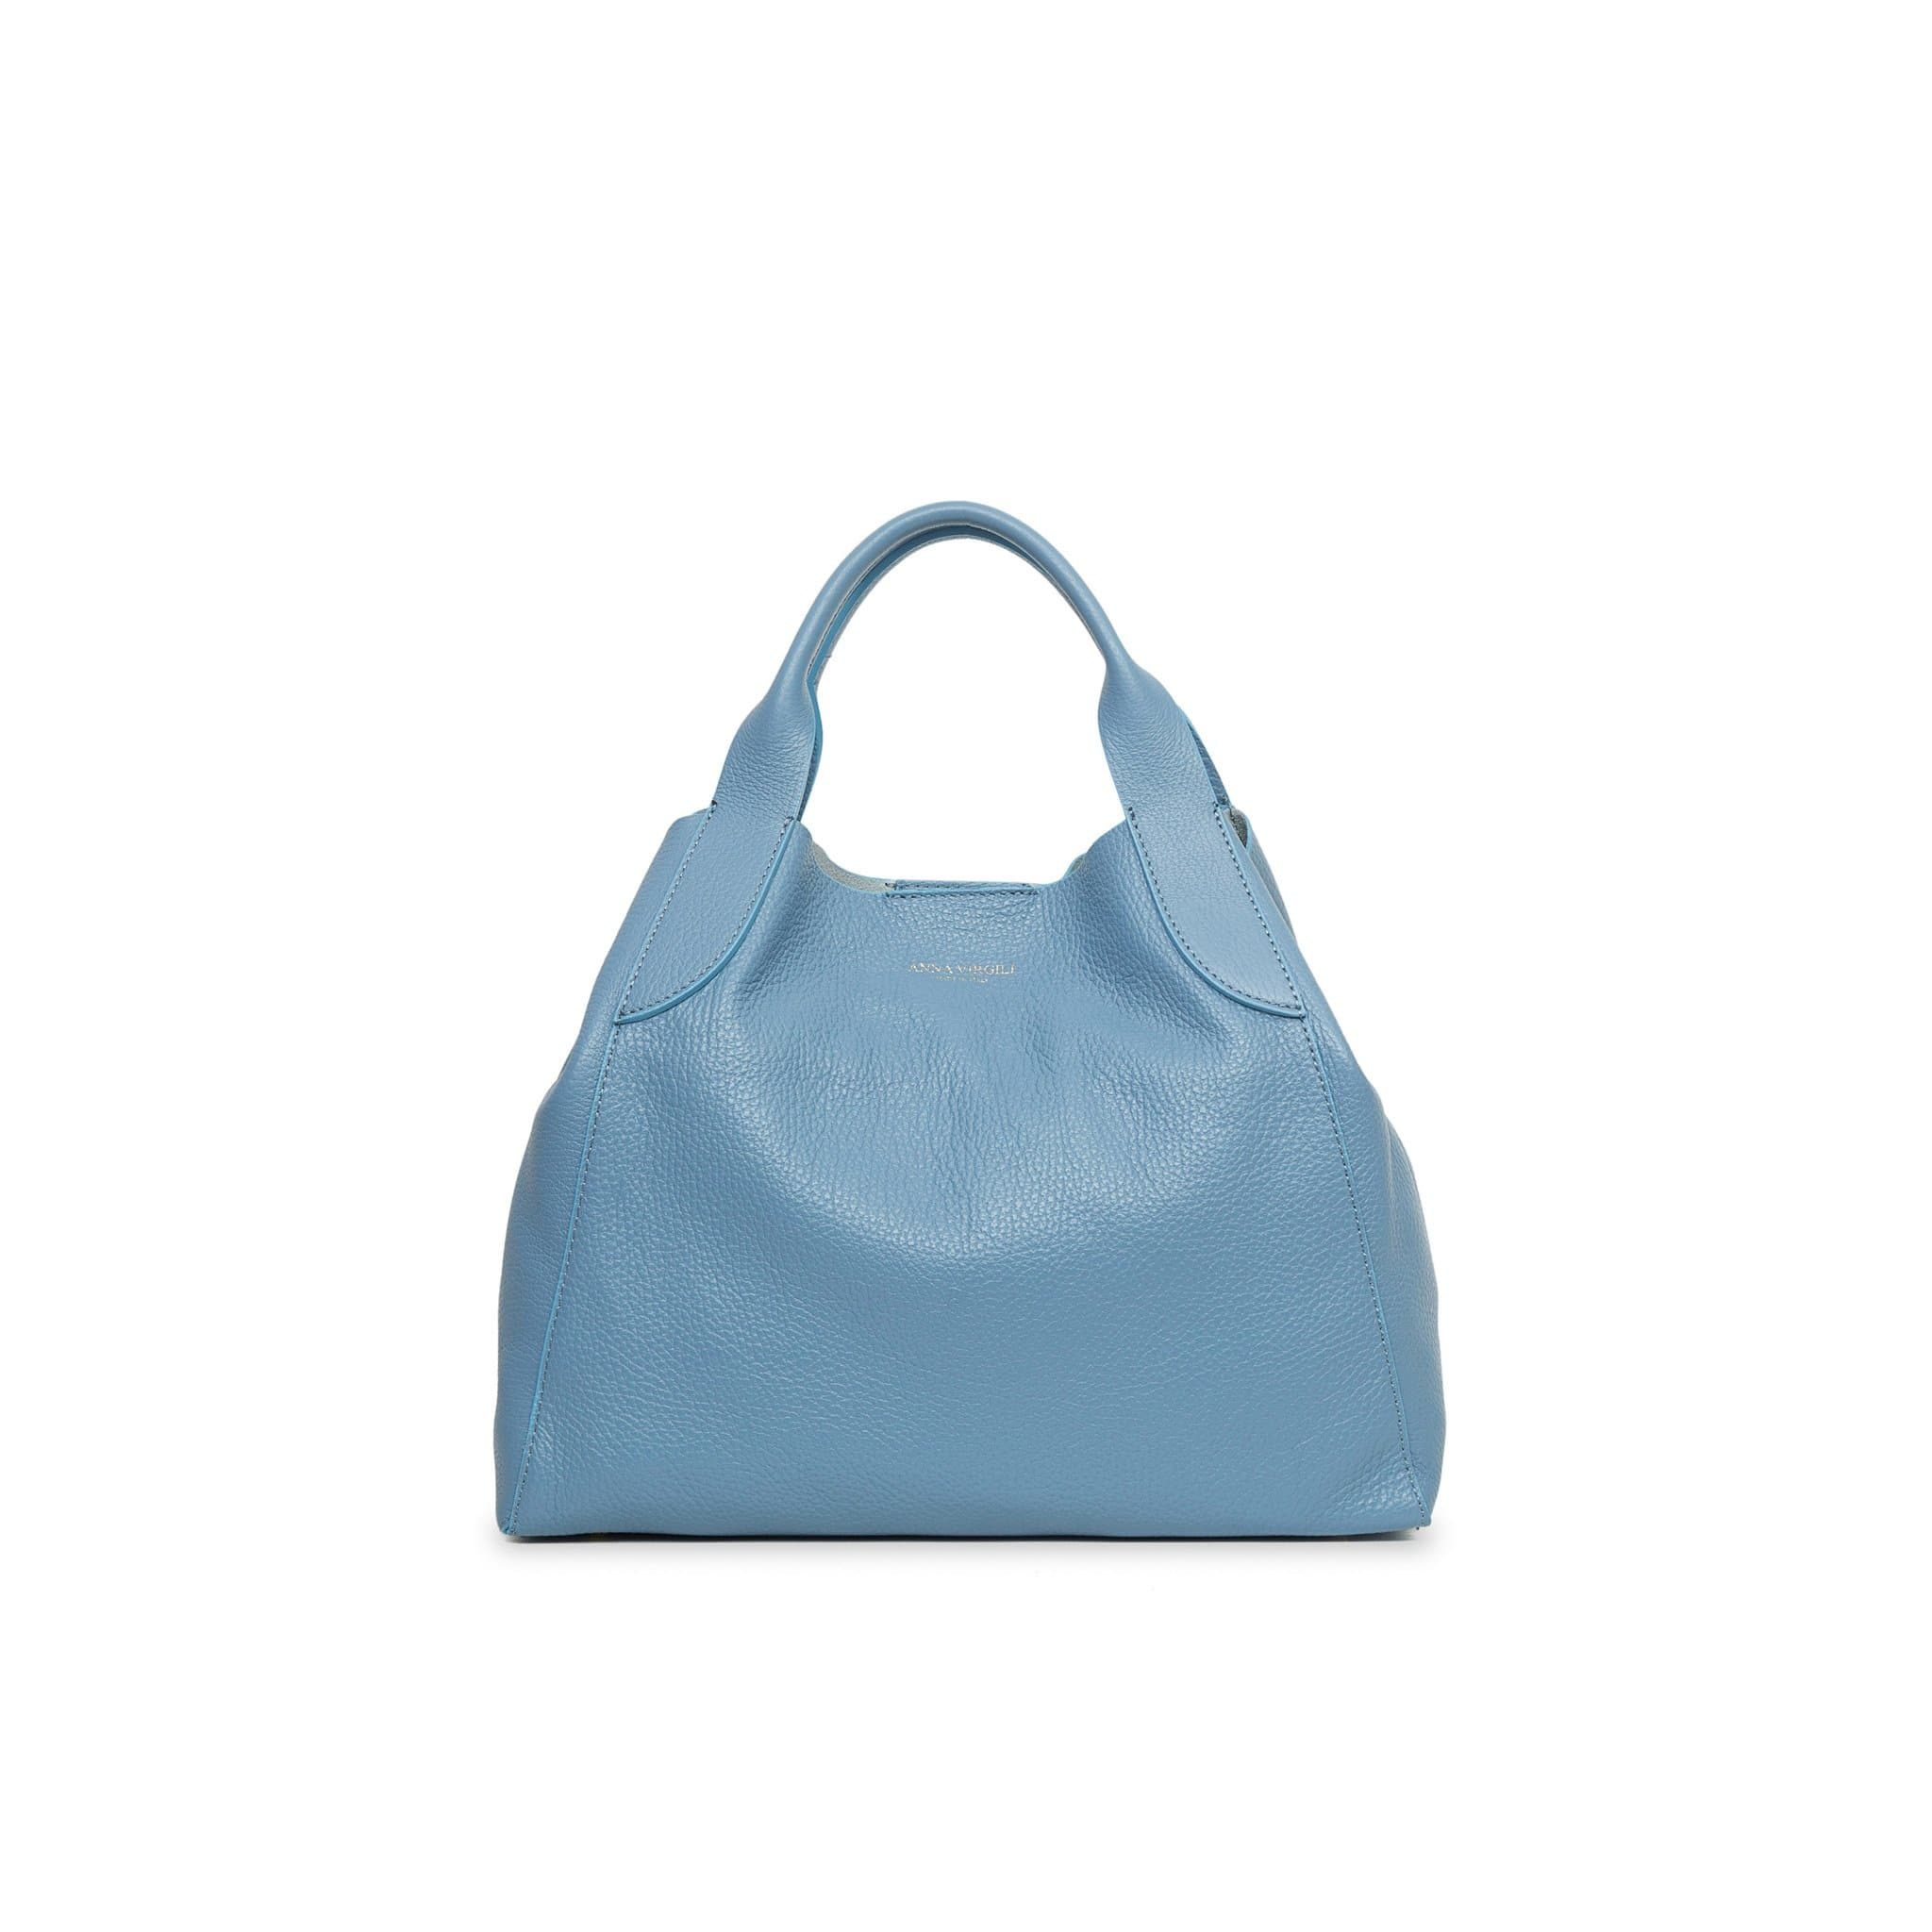 Alice Mini Palermo Leather Handbag - Powder